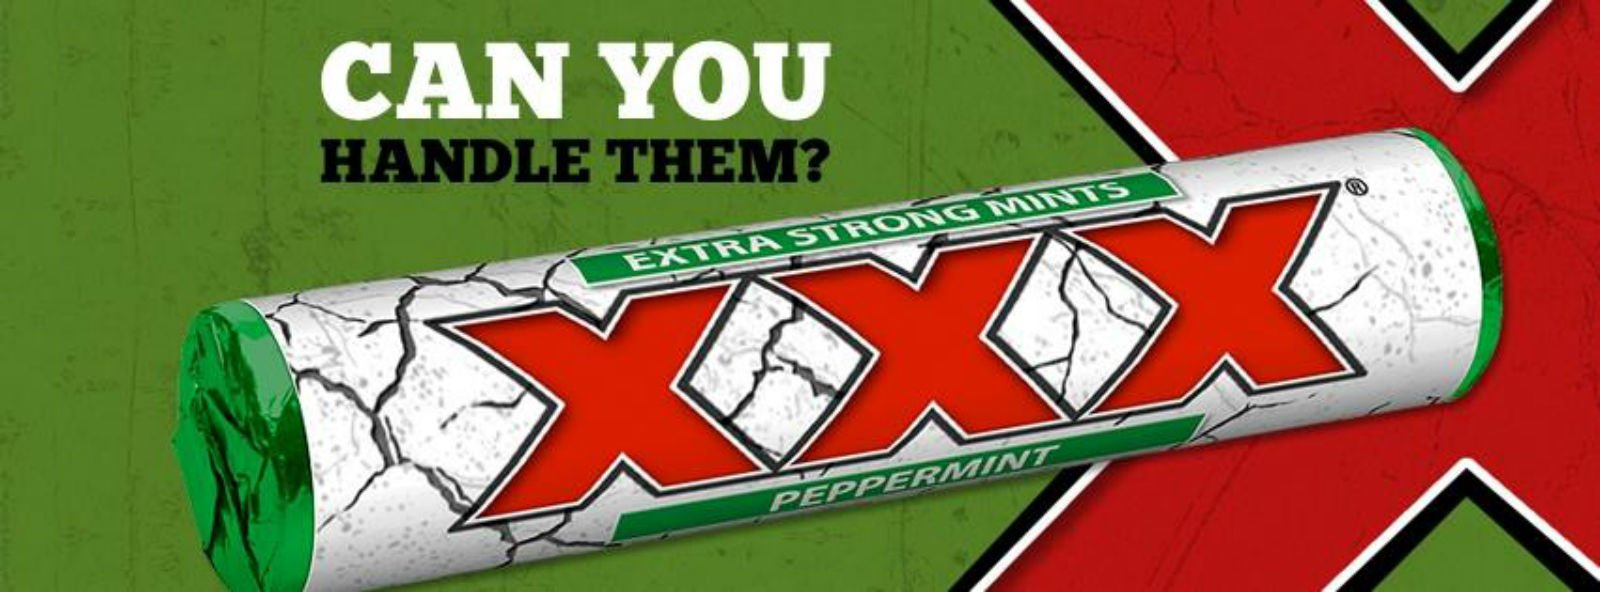 Miller Distributors Ltd appointed Local Distributor for XXX Mints